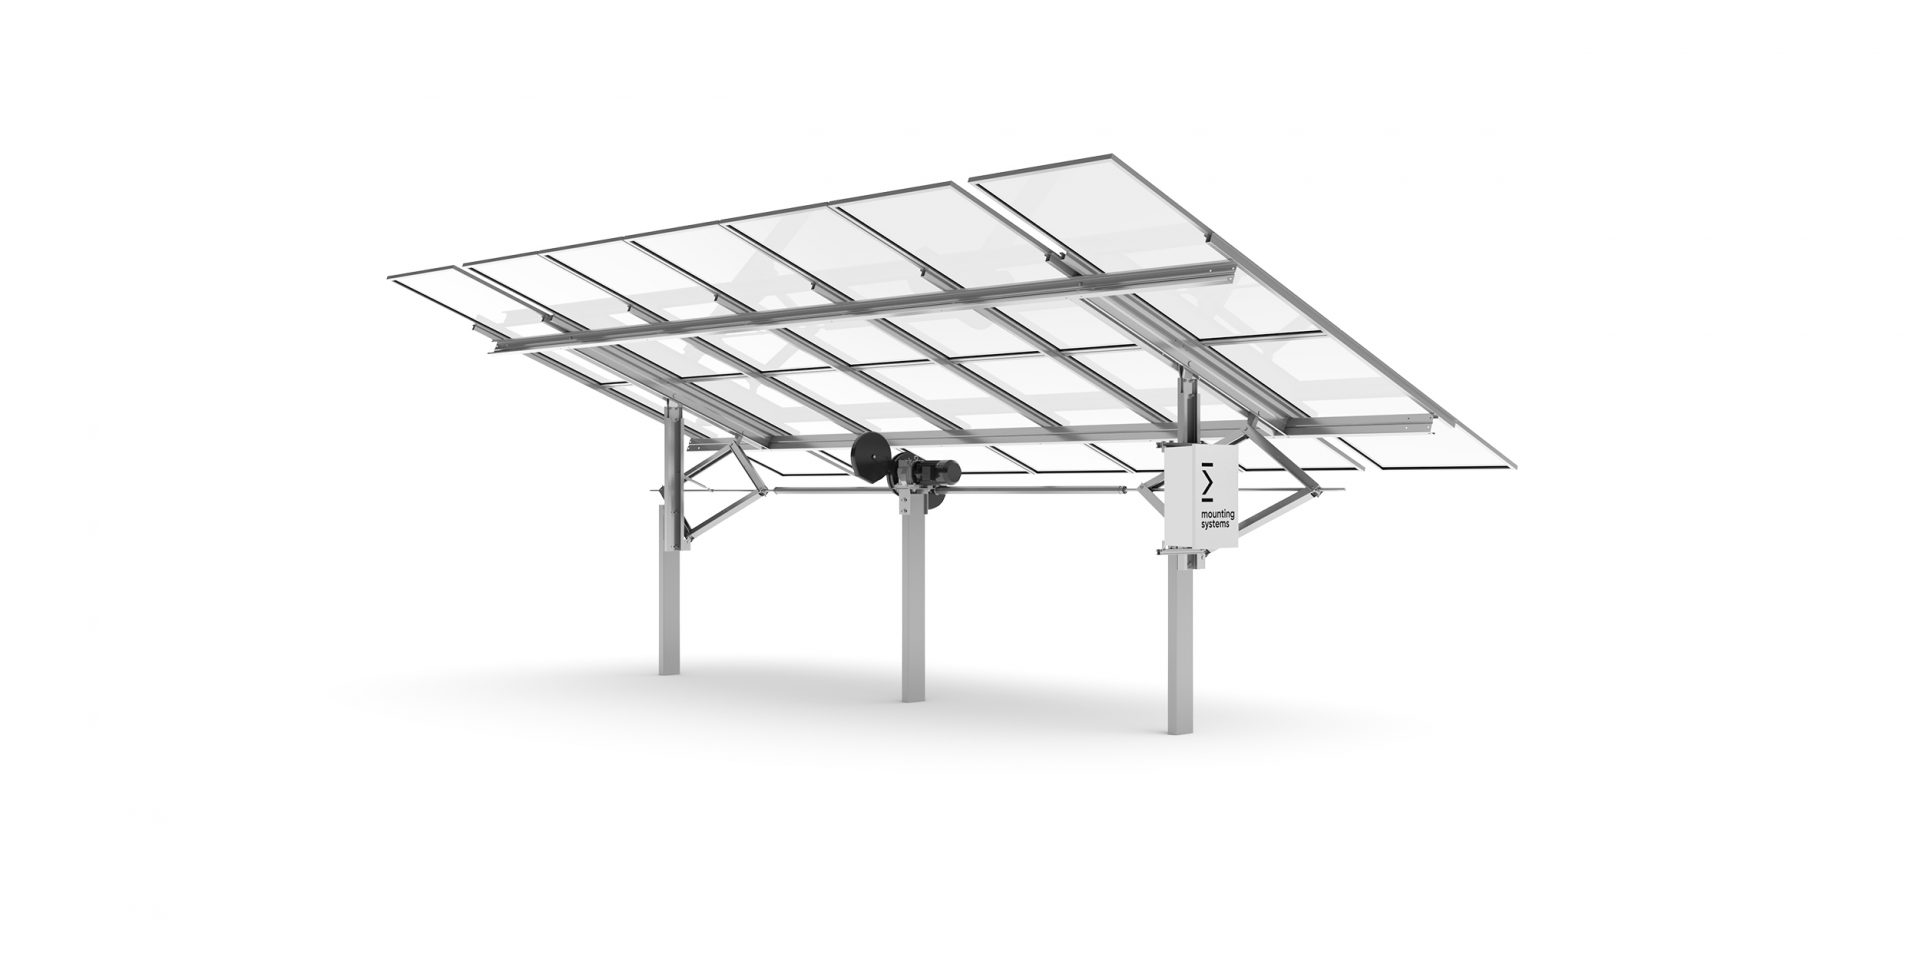 Single-axis Sigma Tracker system